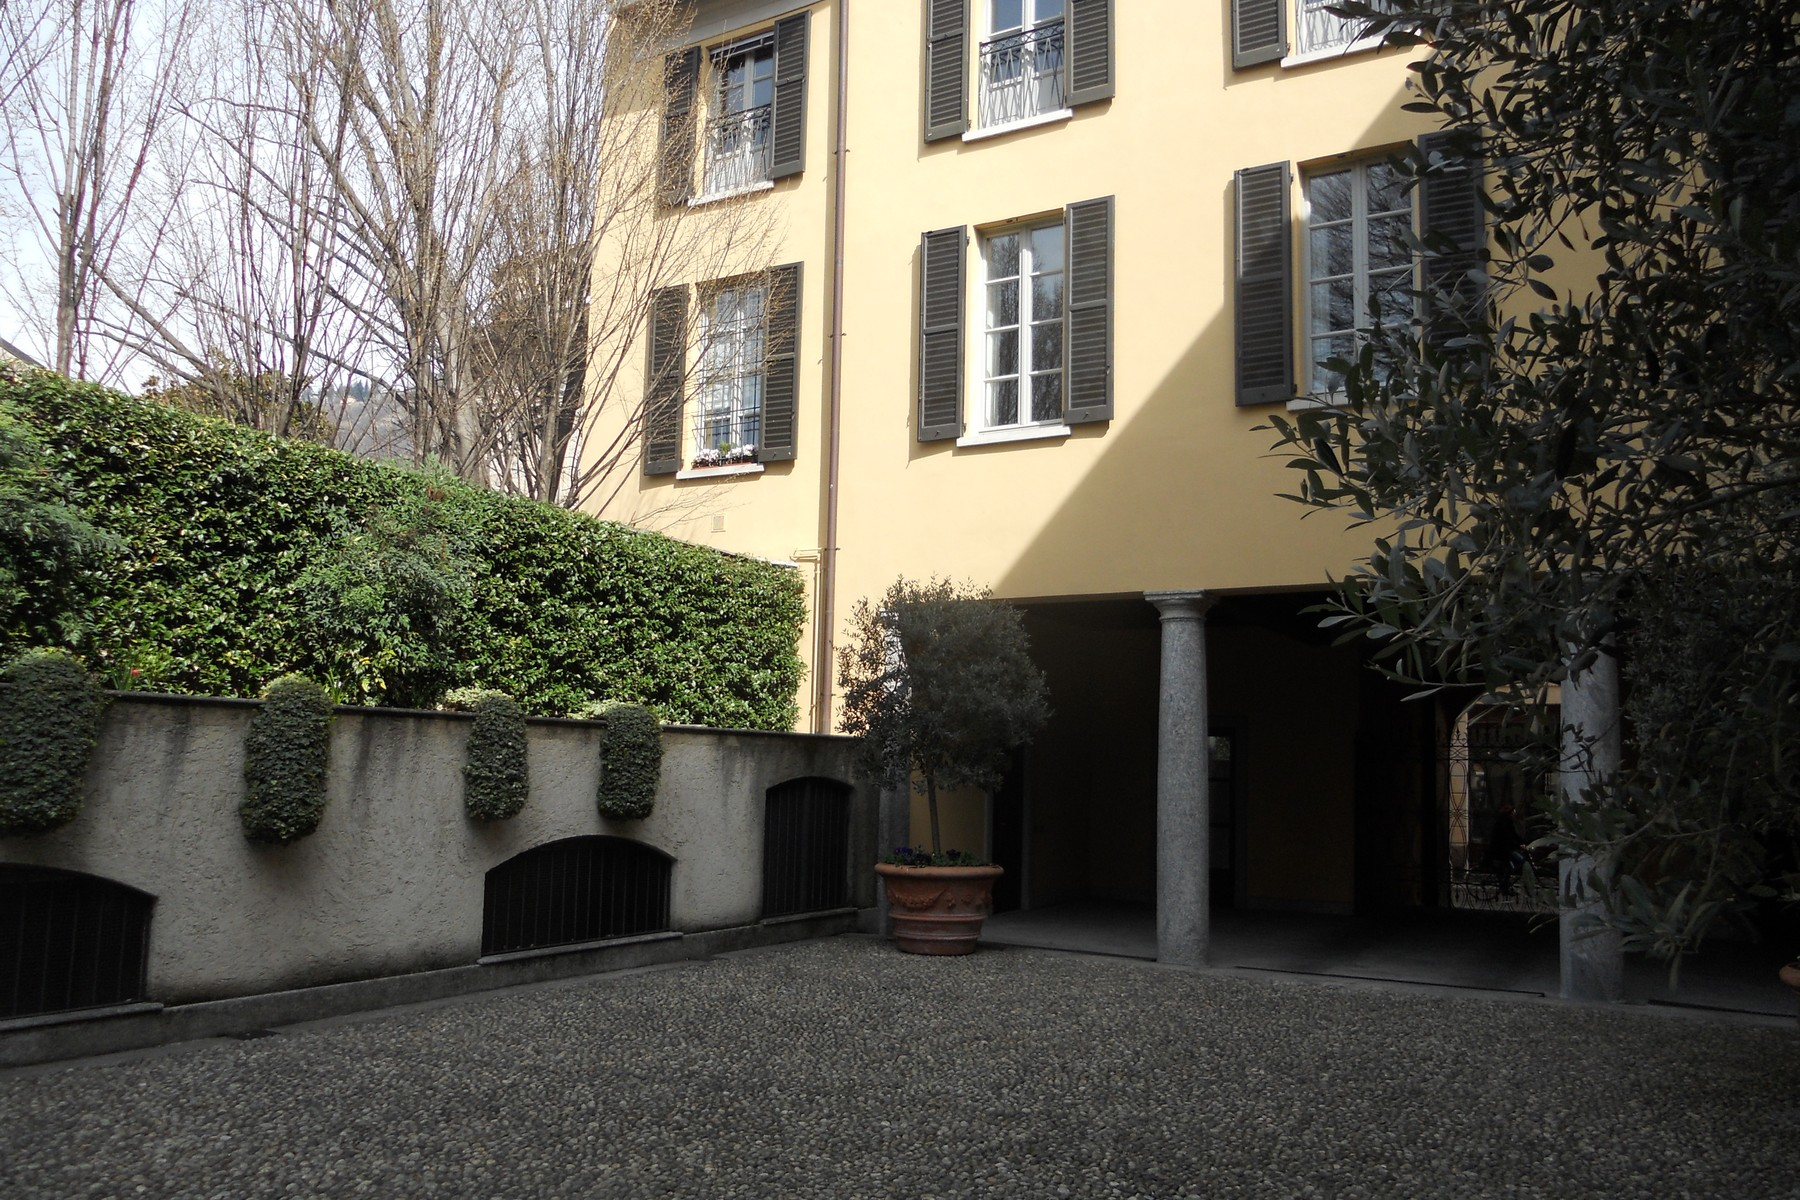 Appartement pour l à louer à Prestigious apartment in via Vittorio Emanuele in Como Como, Como 22100 Italie